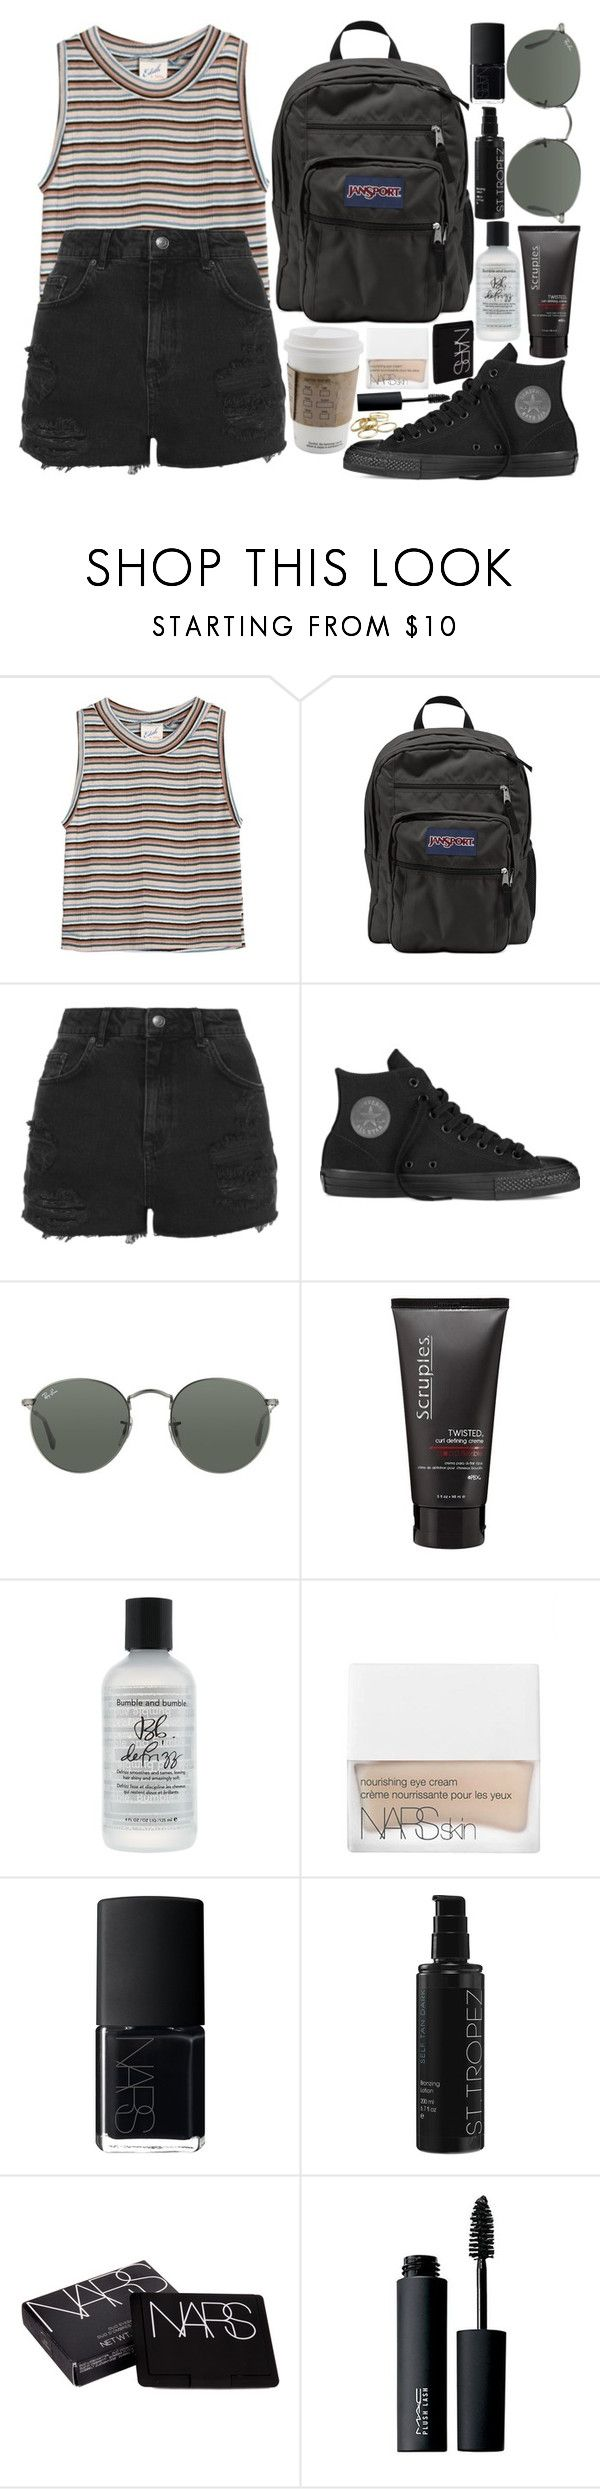 """""""some say"""" by velvet-ears ❤ liked on Polyvore featuring Edith A. Miller, JanSport, Topshop, Converse, Ray-Ban, Bumble and bumble, NARS Cosmetics, St. Tropez, MAC Cosmetics and Kendra Scott"""